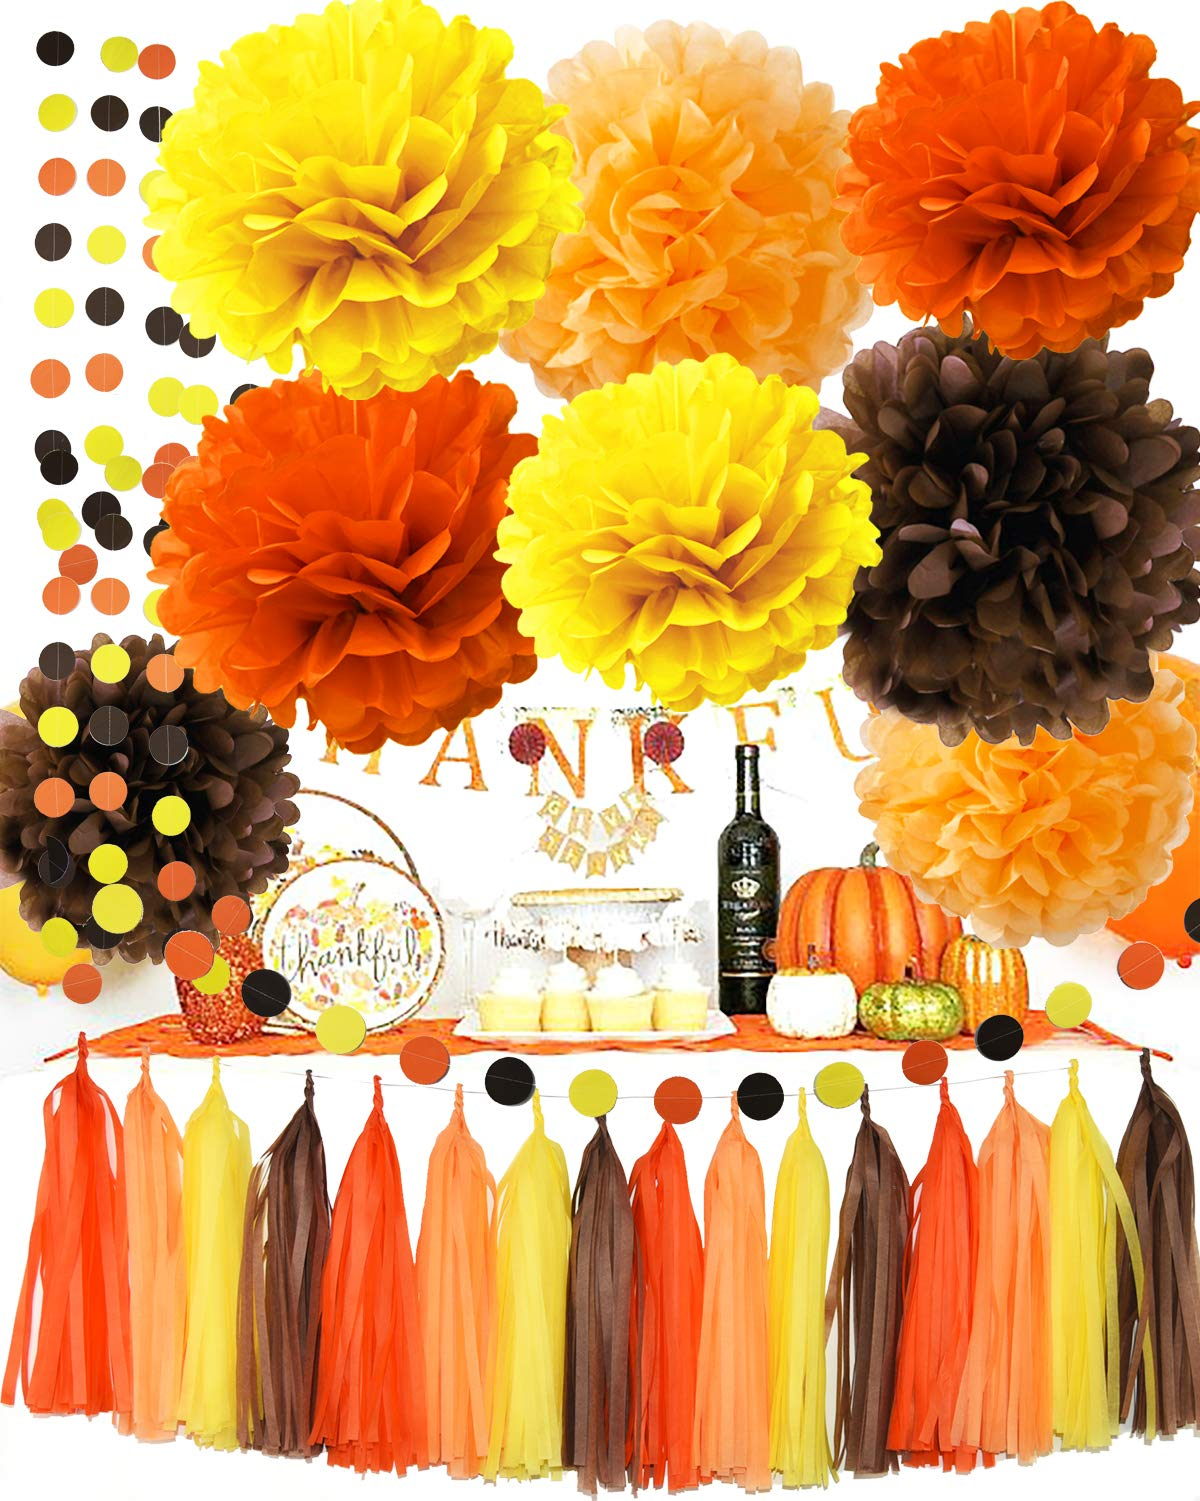 Fall Party Supplies/Thanksgiving Party Decorations Yellow Orange Brown Pumpkin Color Tissue Pom Pom Tassel Garland for Fall Birthday Party/Autumn Party Decorations/Autumn Wedding, Fall Themed Decor by Qian's Party